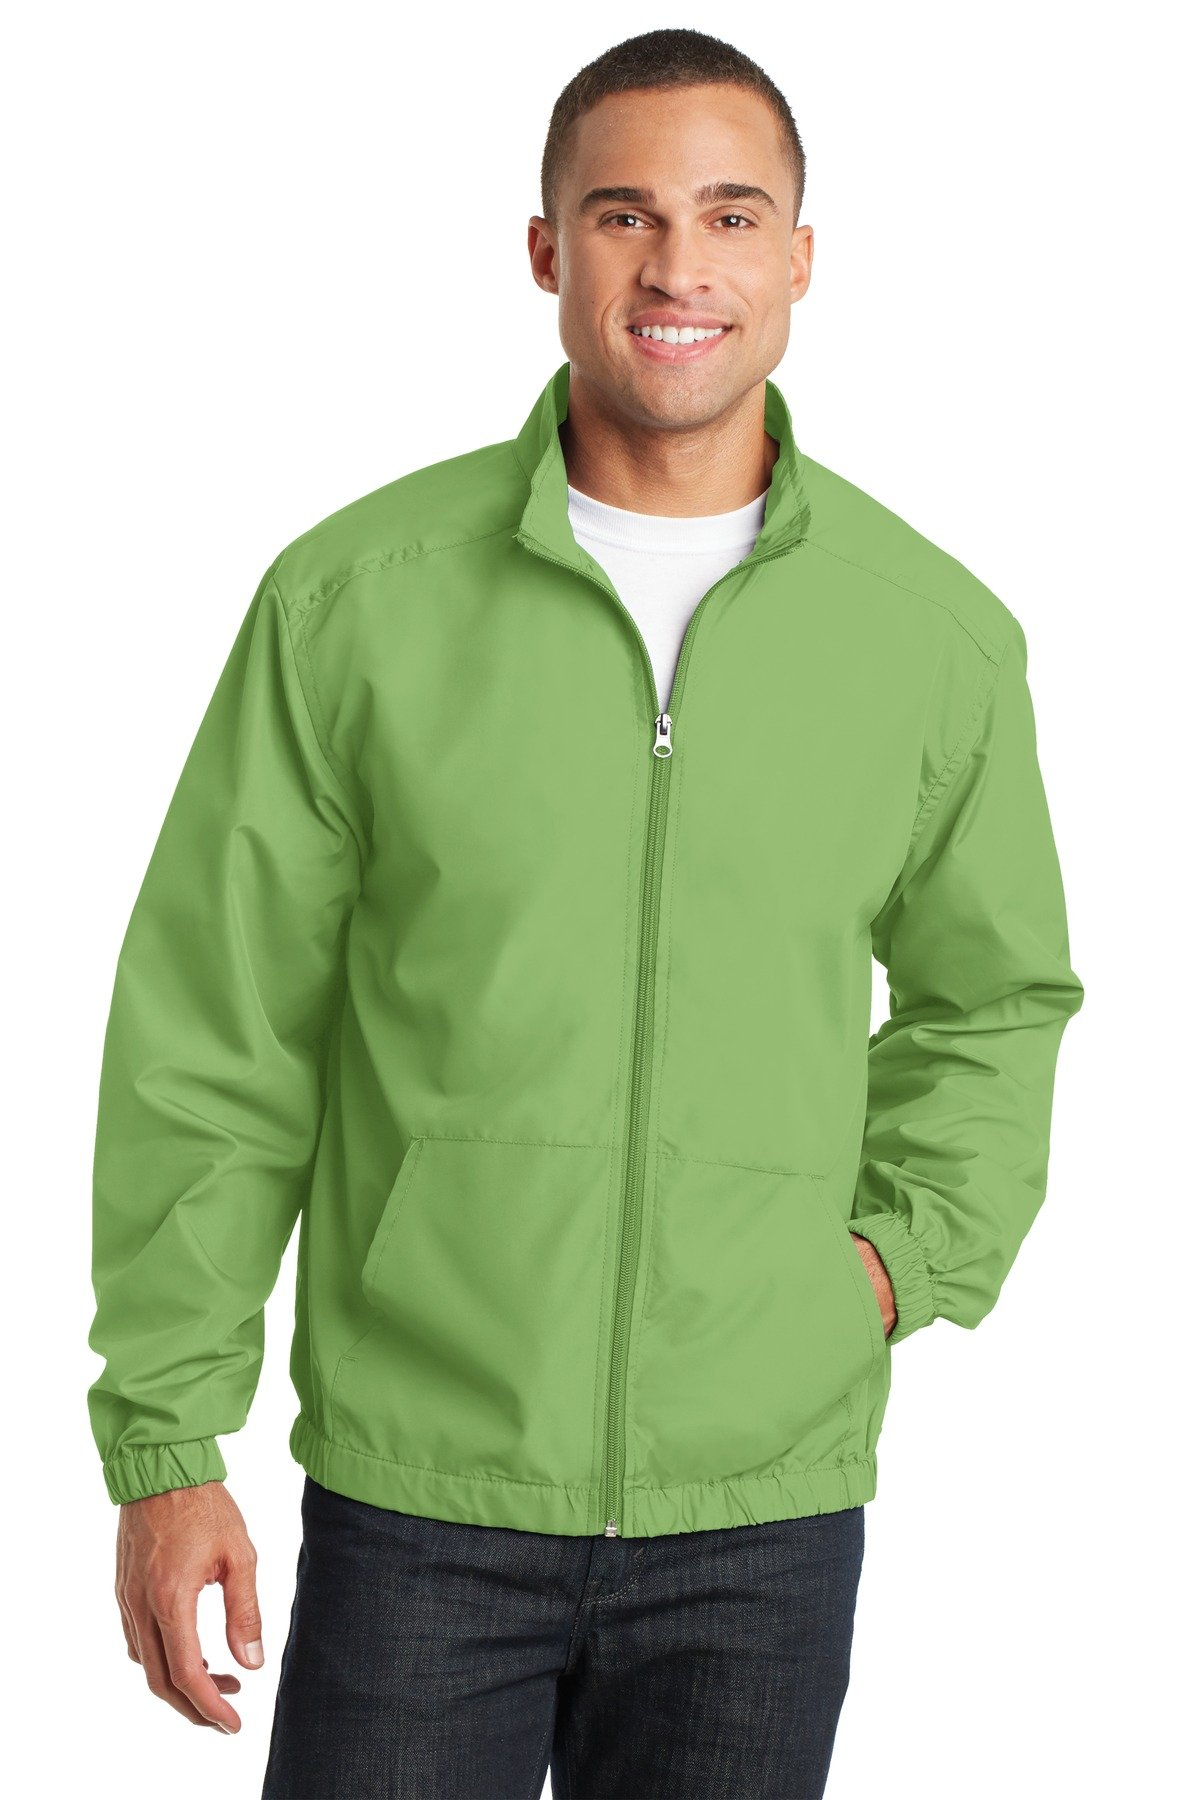 Port Authority Men's Essential Jacket XL Green Oasis by Port Authority